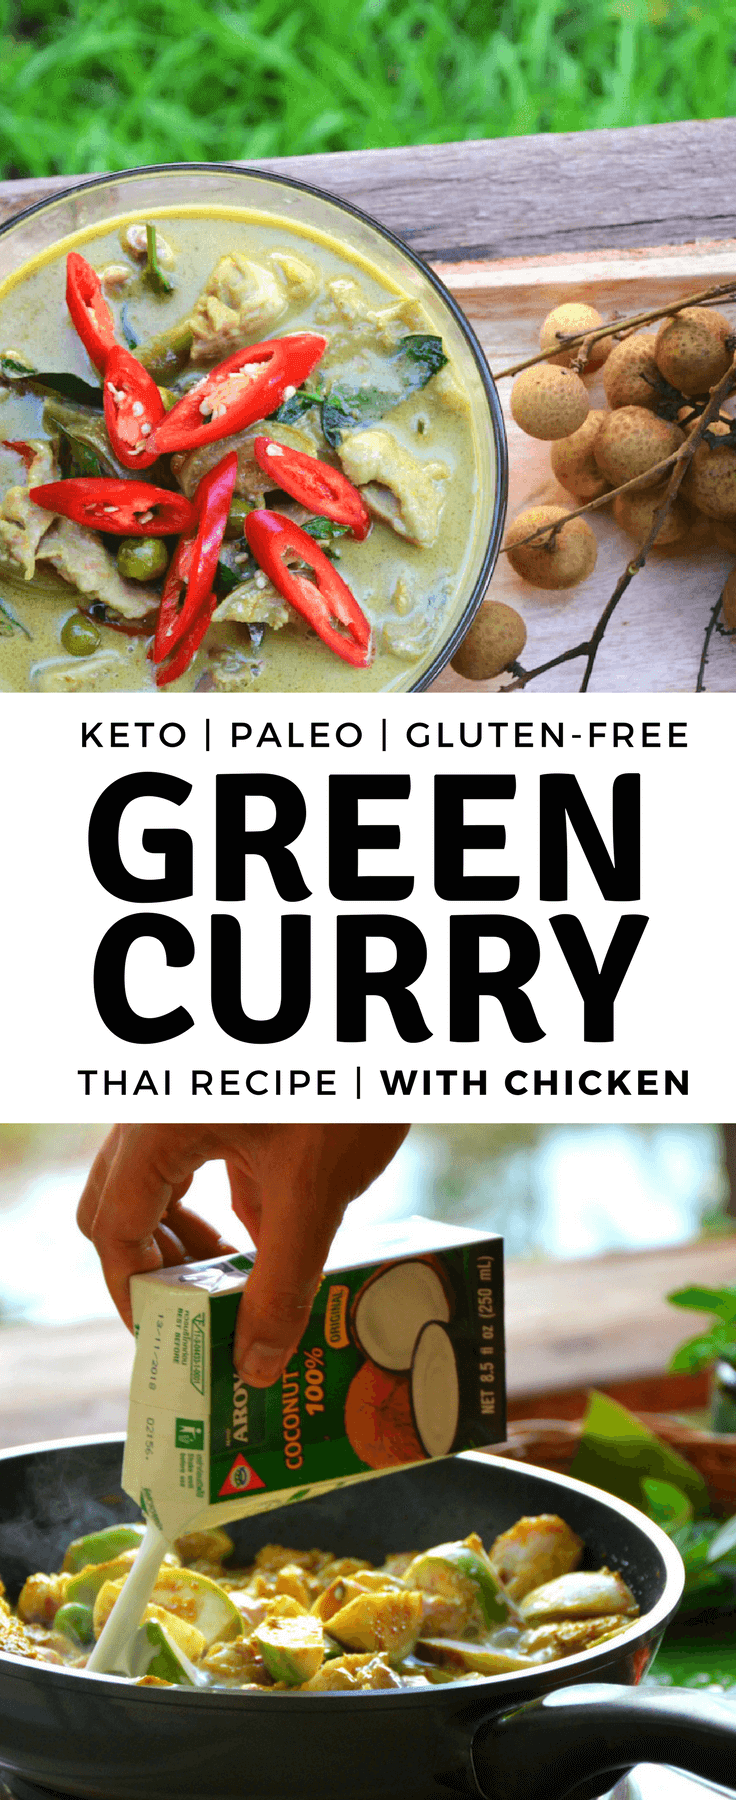 Green Curry Chicken Recipe on Pinterest